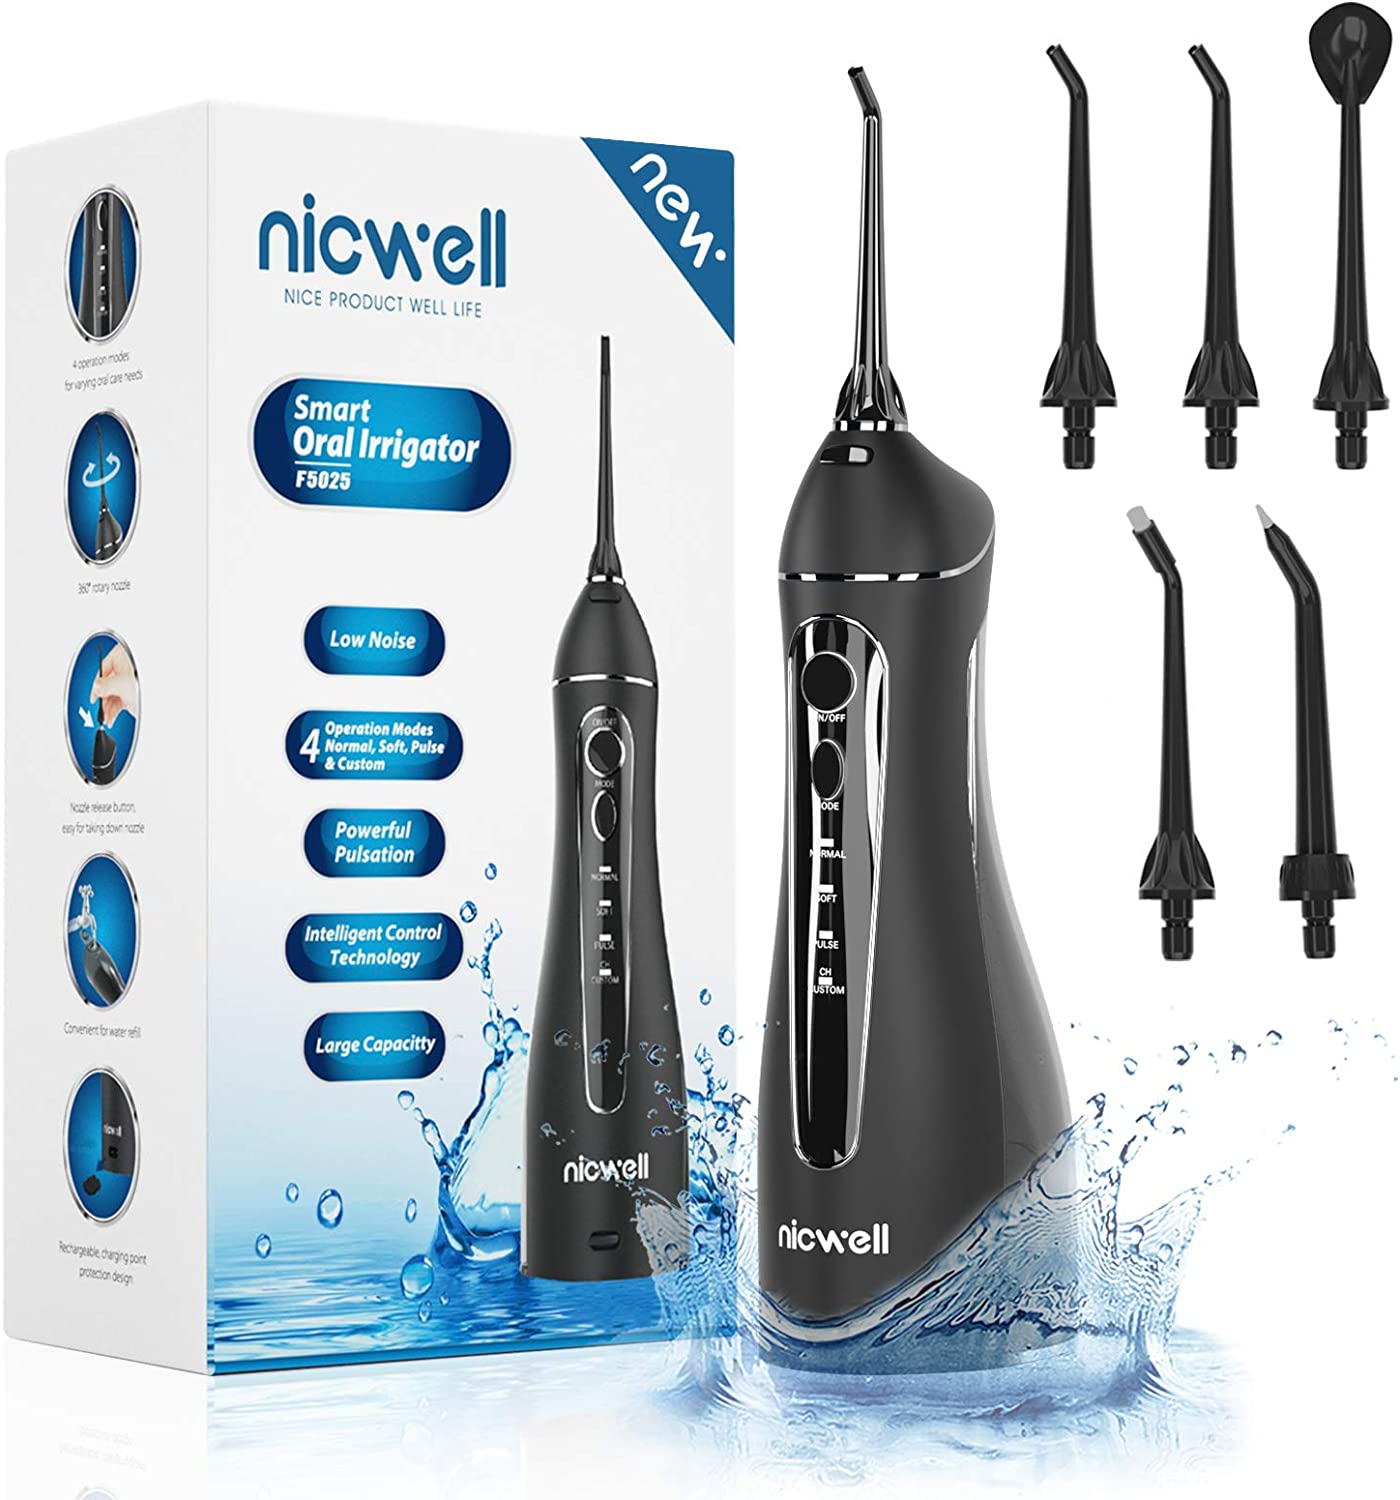 Water Flosser Cordless for Teeth - Nicwell 4 Modes Dental Oral Irrigator, Portable and Rechargeable IPX7 Waterproof Powerful Battery Life Water Pick Teeth Cleaner for Home Travel: Health & Personal Care